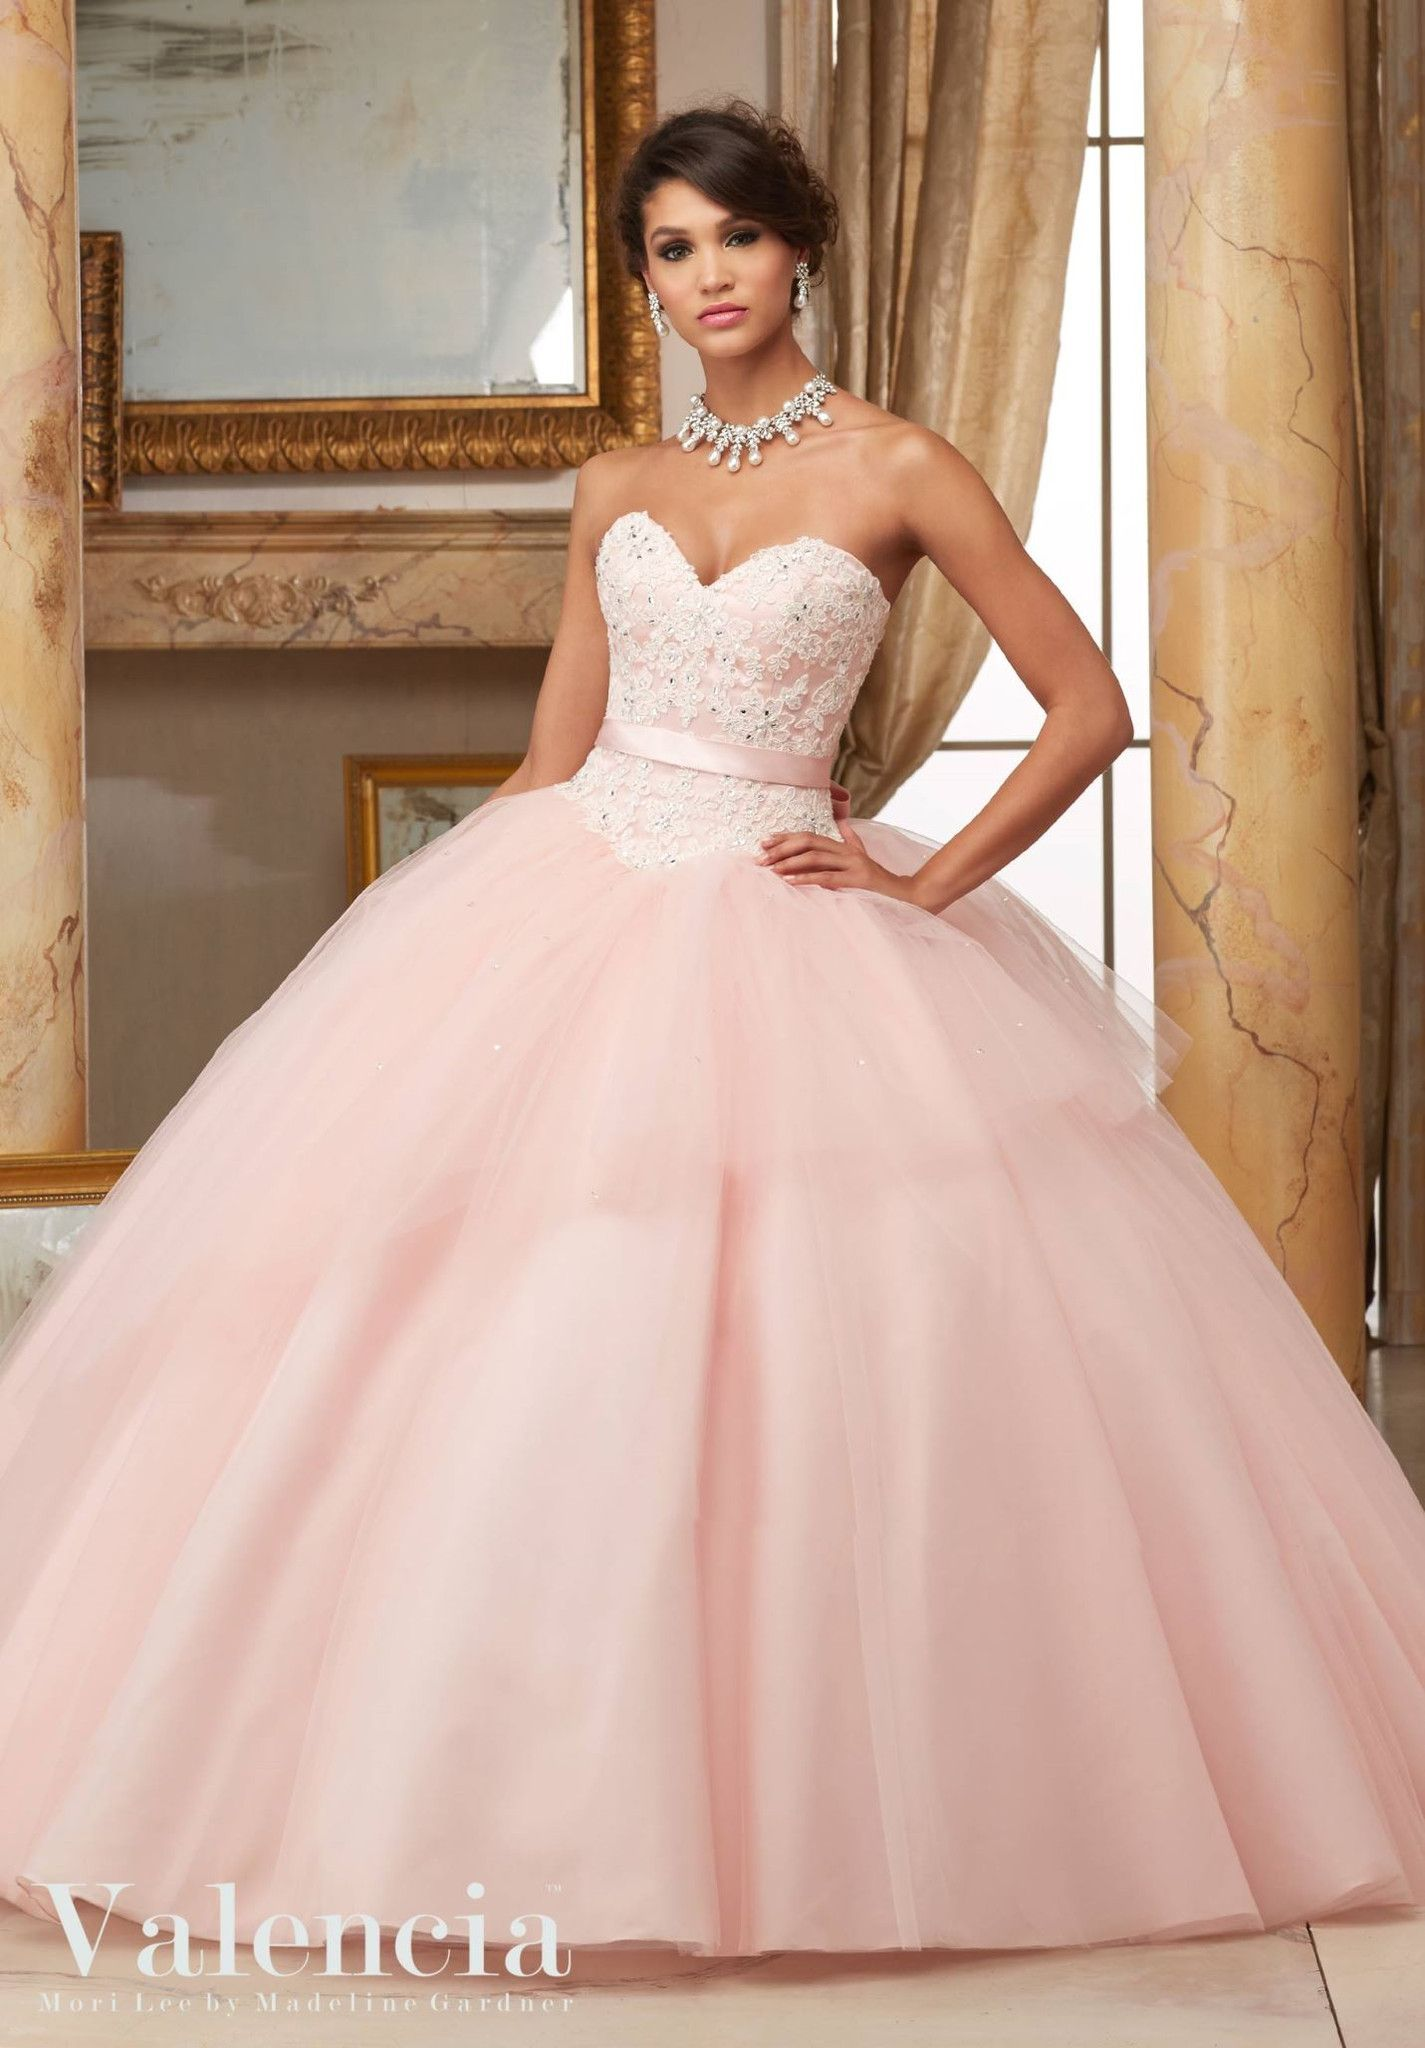 Mori Lee Valencia Quinceanera Dress 60003 | Años